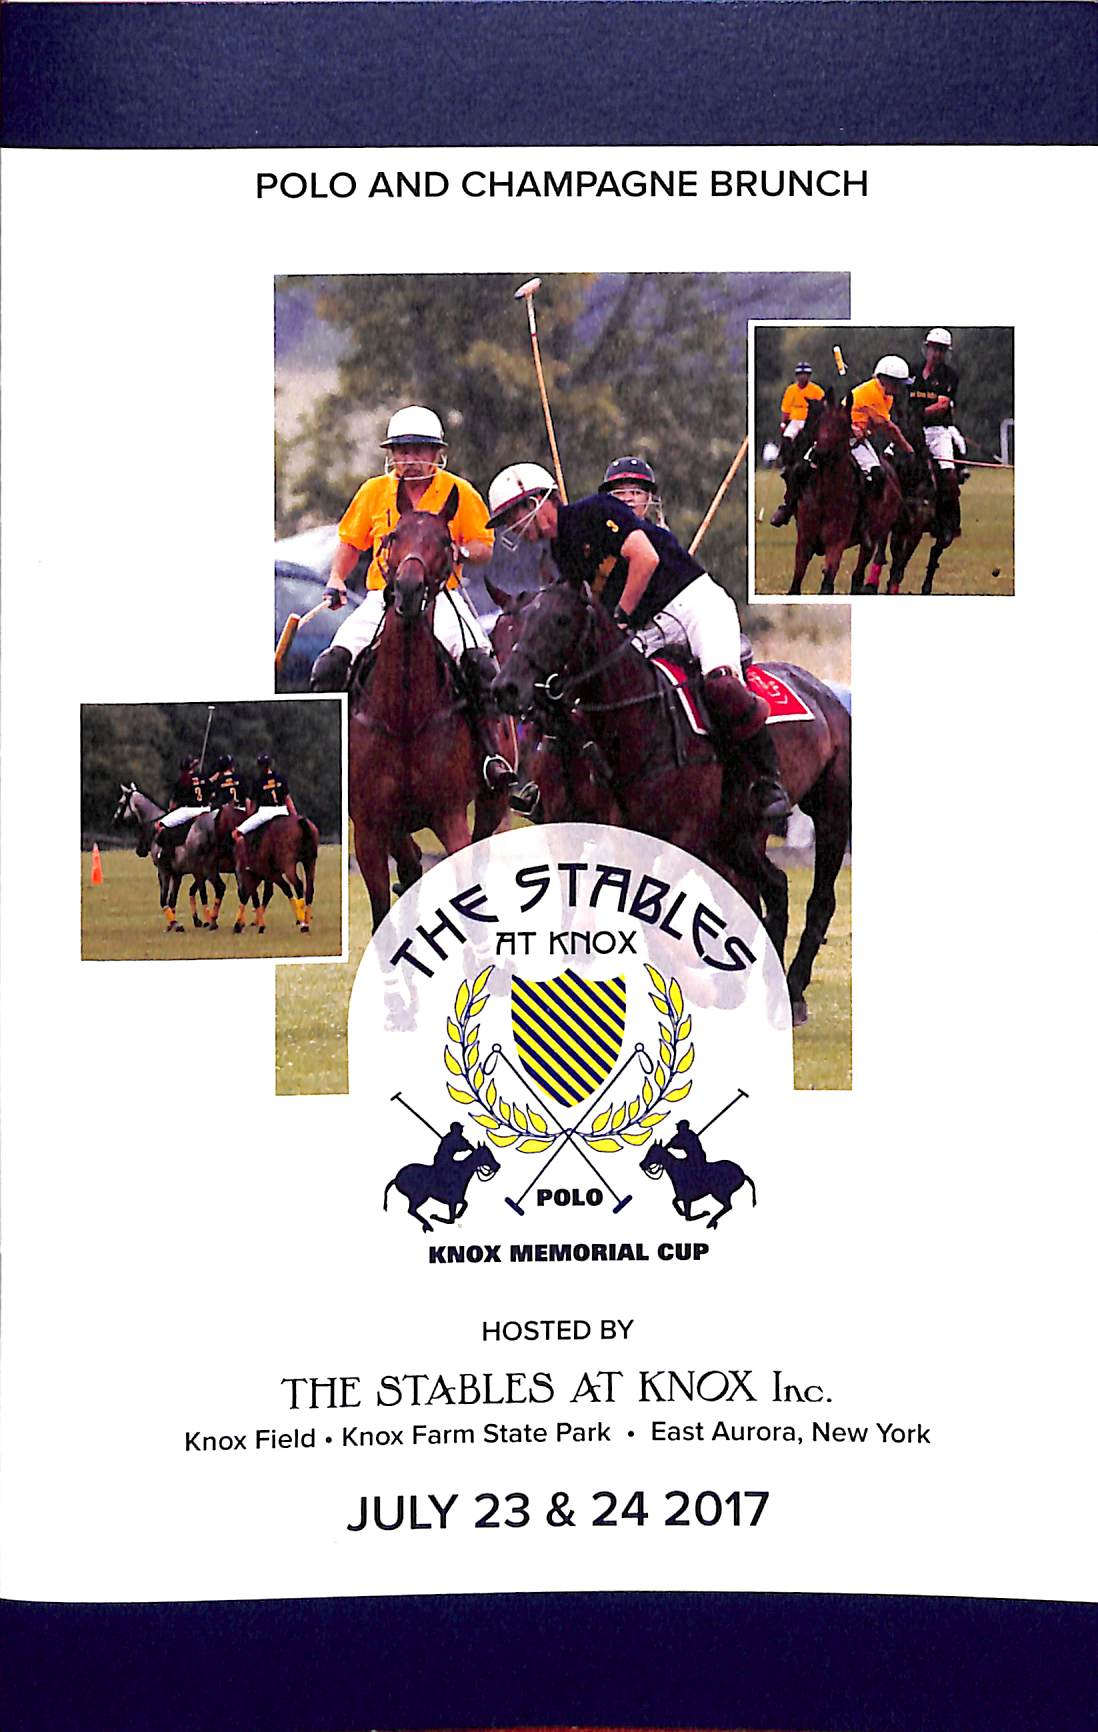 """The Stables at Knox Polo East Aurora, NY"" 2017"